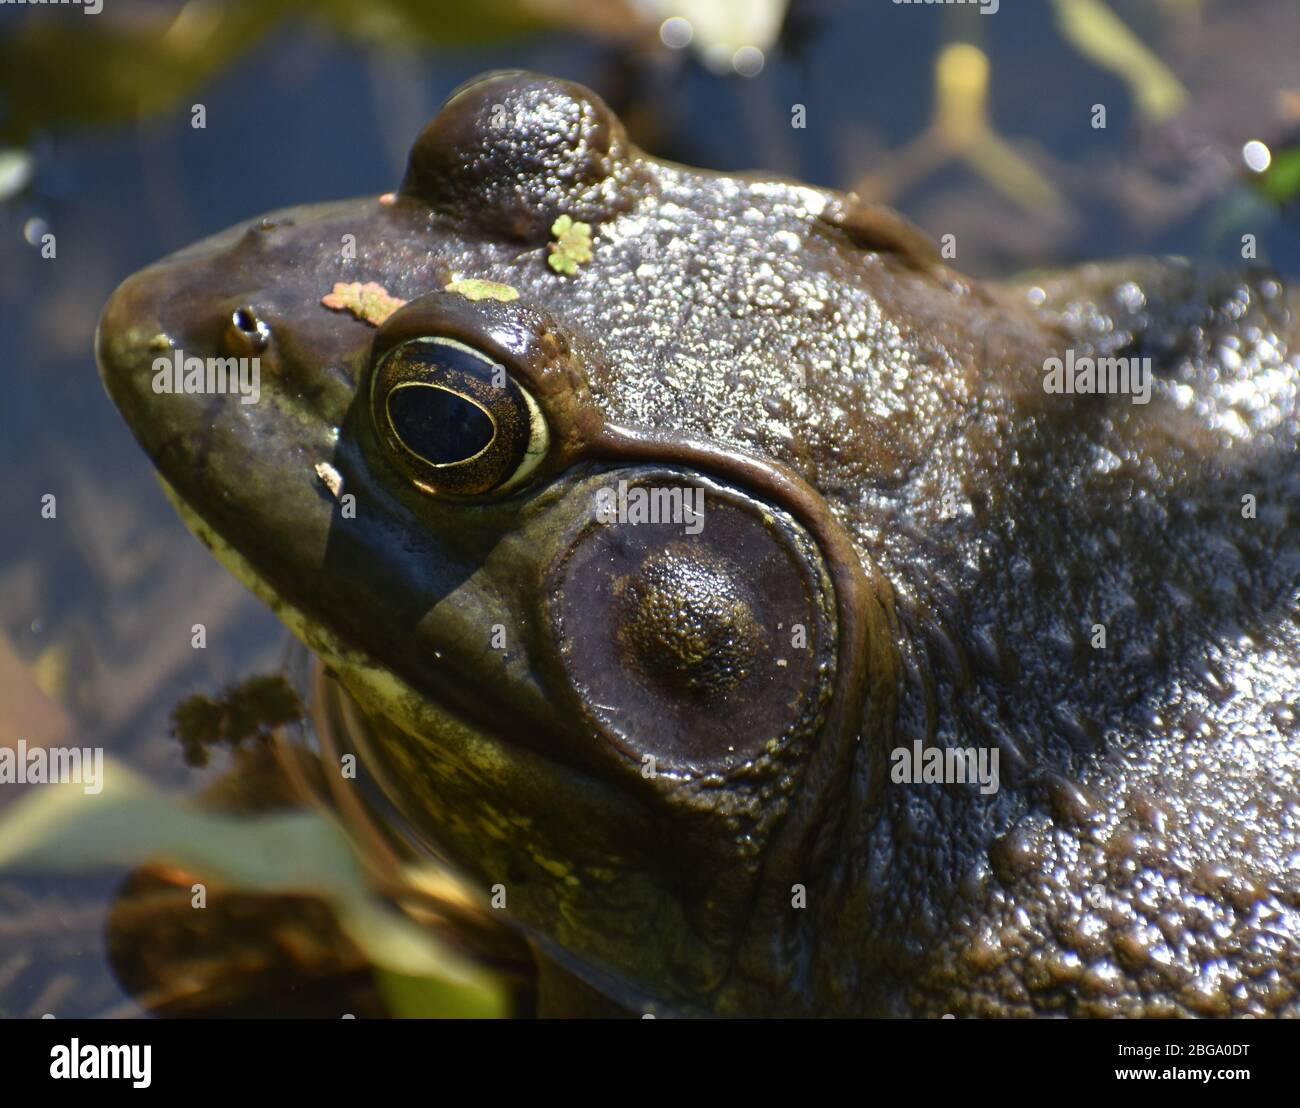 A close-up of a male American bullfrog (Lithobates catesbeianus), showing the prominent tympanum. Taken at edge of Watsonville Slough in California Stock Photo